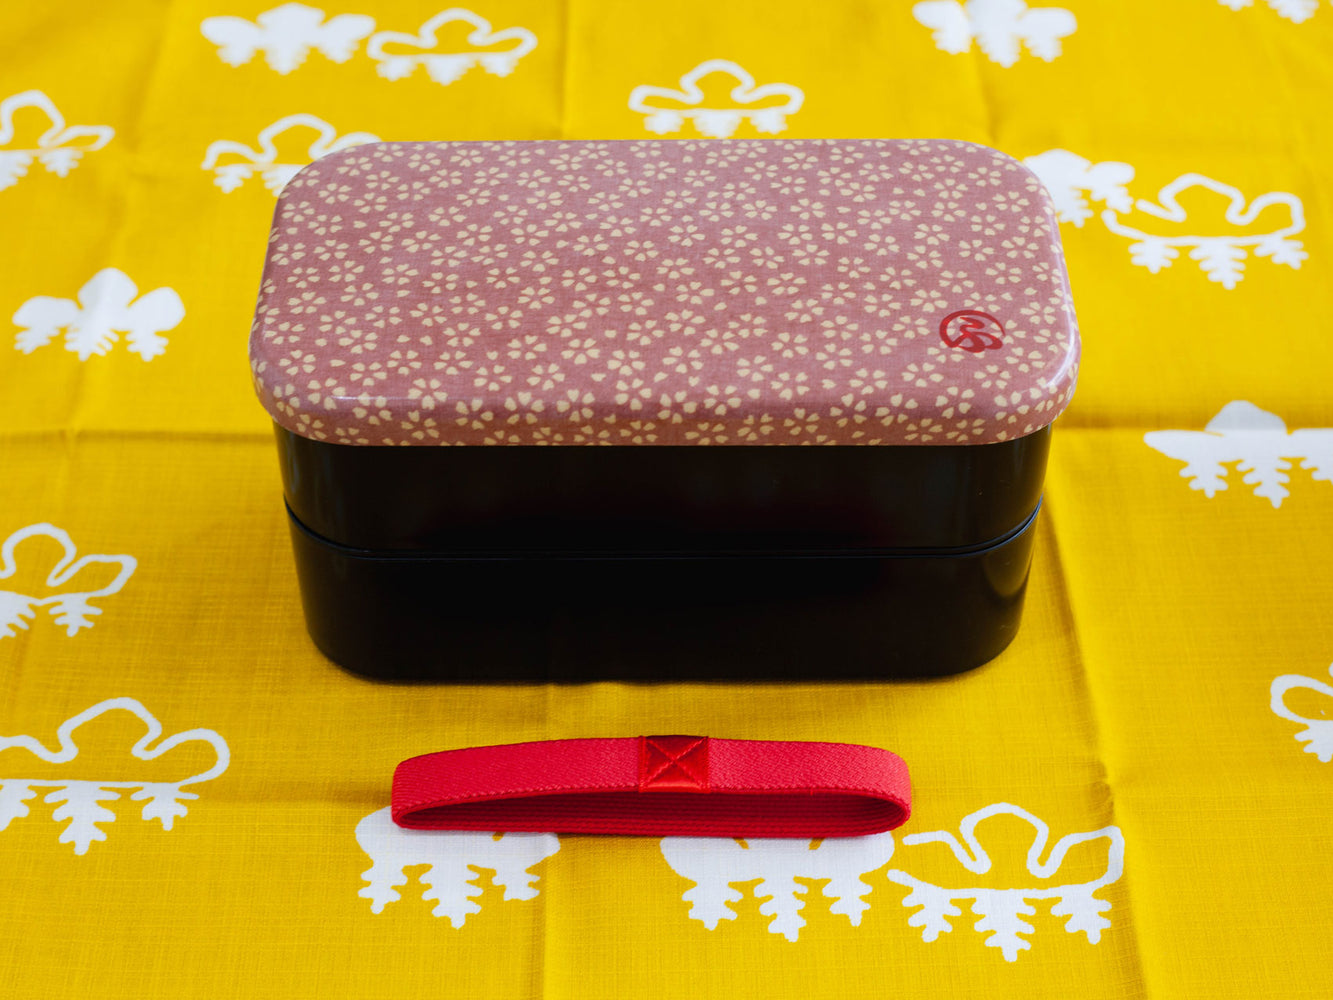 Wafu Cloth Rectangle Bento Box Large | Sakura Blossom by Hakoya - Bento&co Japanese Bento Lunch Boxes and Kitchenware Specialists